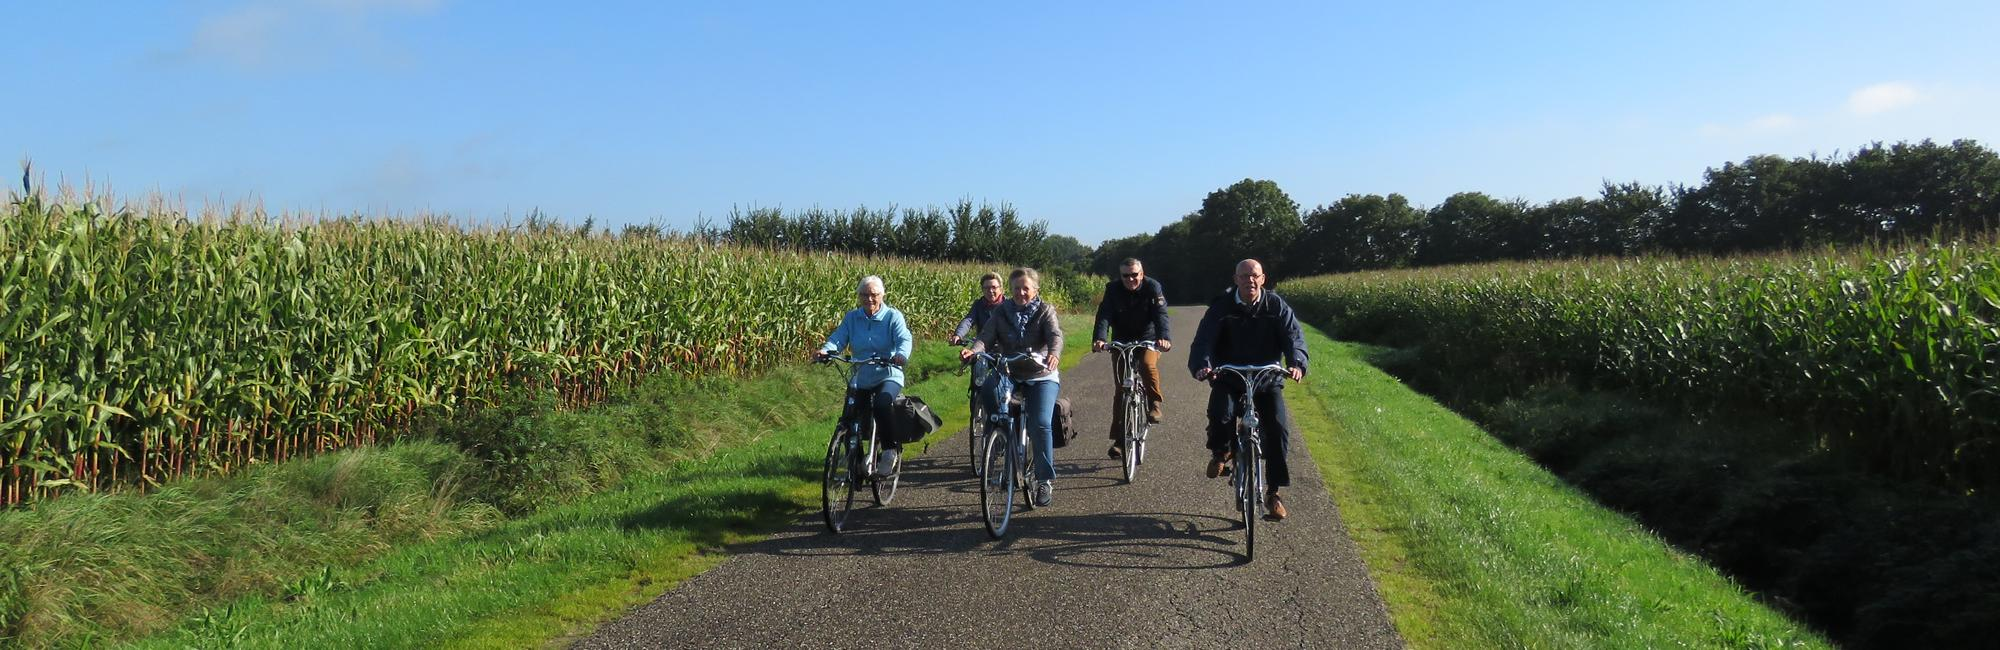 Dutch Bike Tours Radreisen Mitteldrenthe Stern Tour N-S